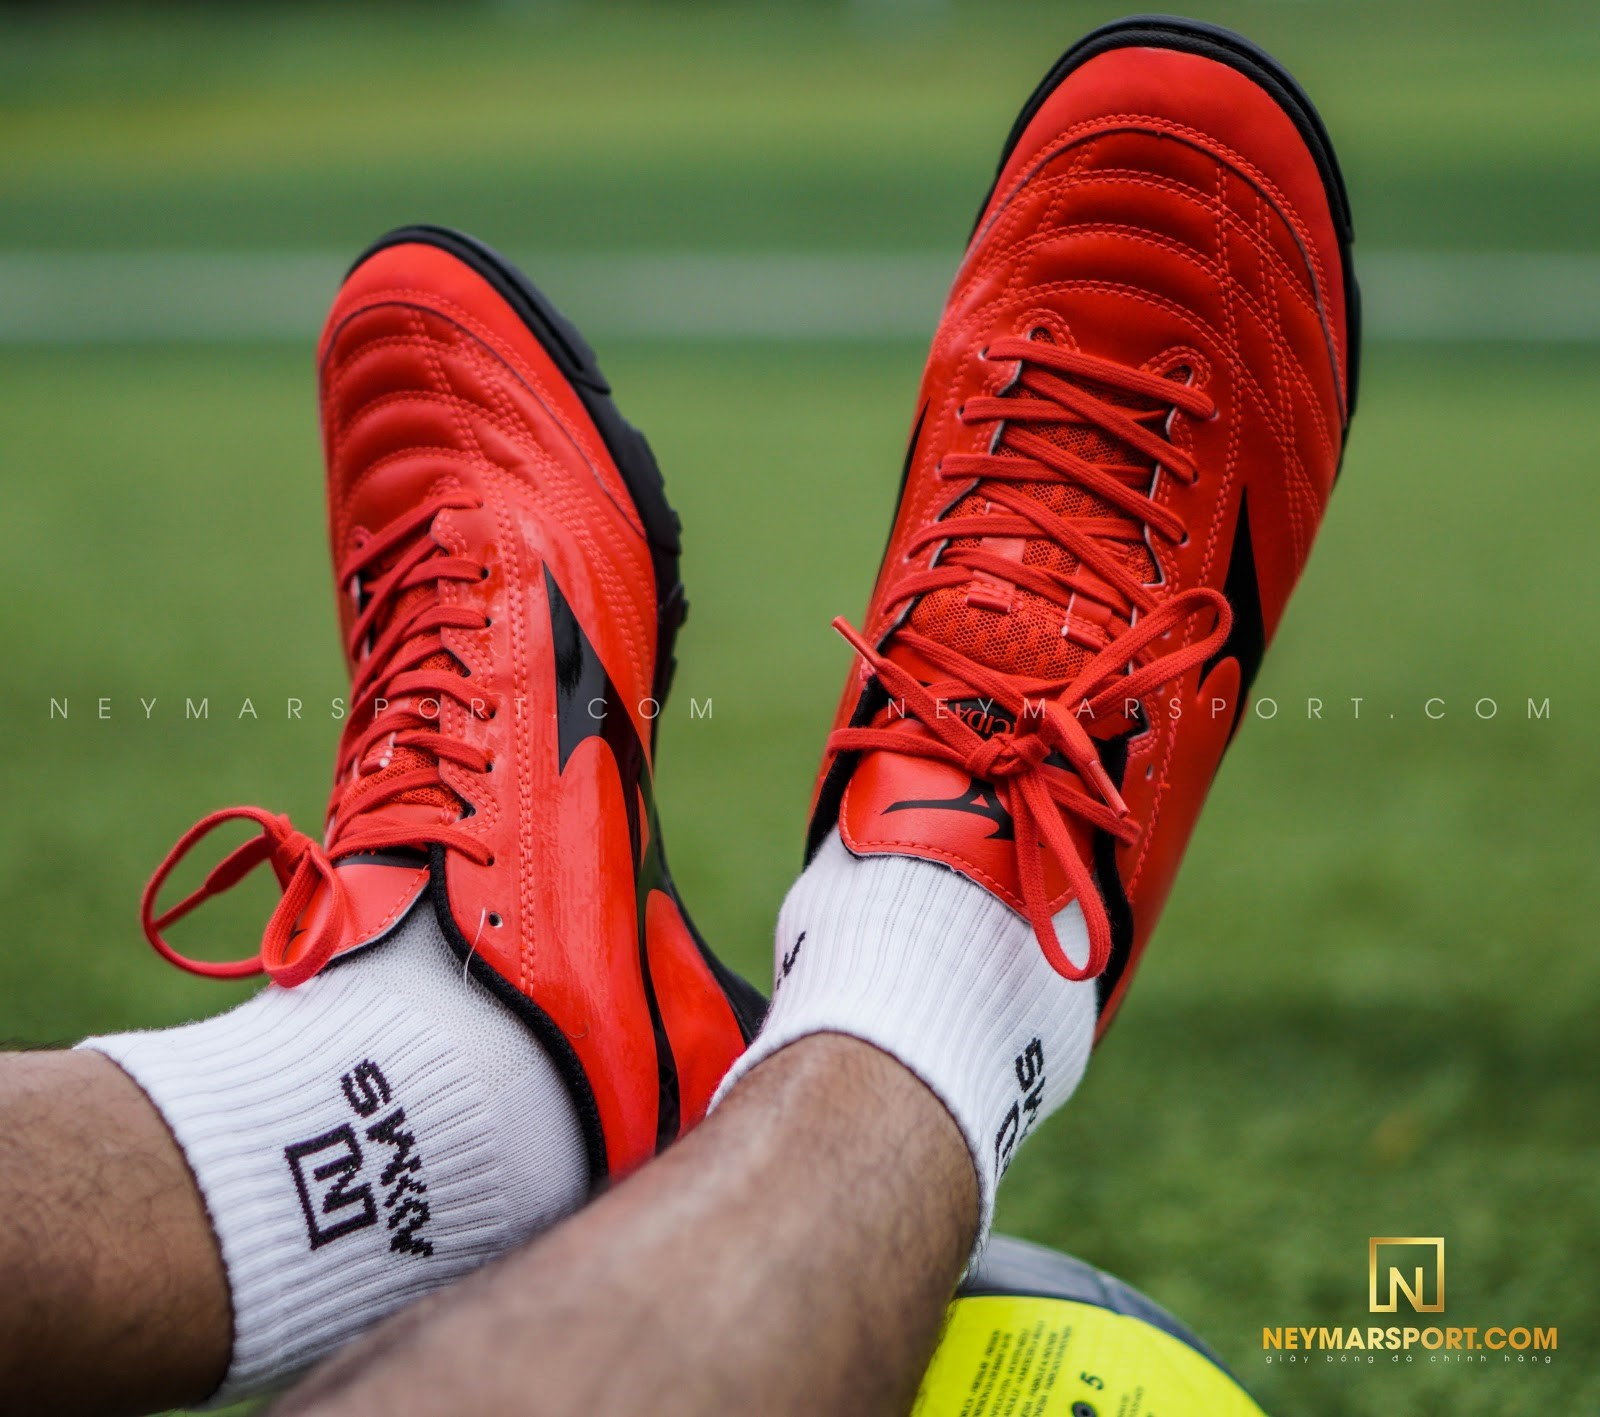 Giày đá bóng Mizuno Monarcida Neo Sala Select TF - Ignition Red/Black